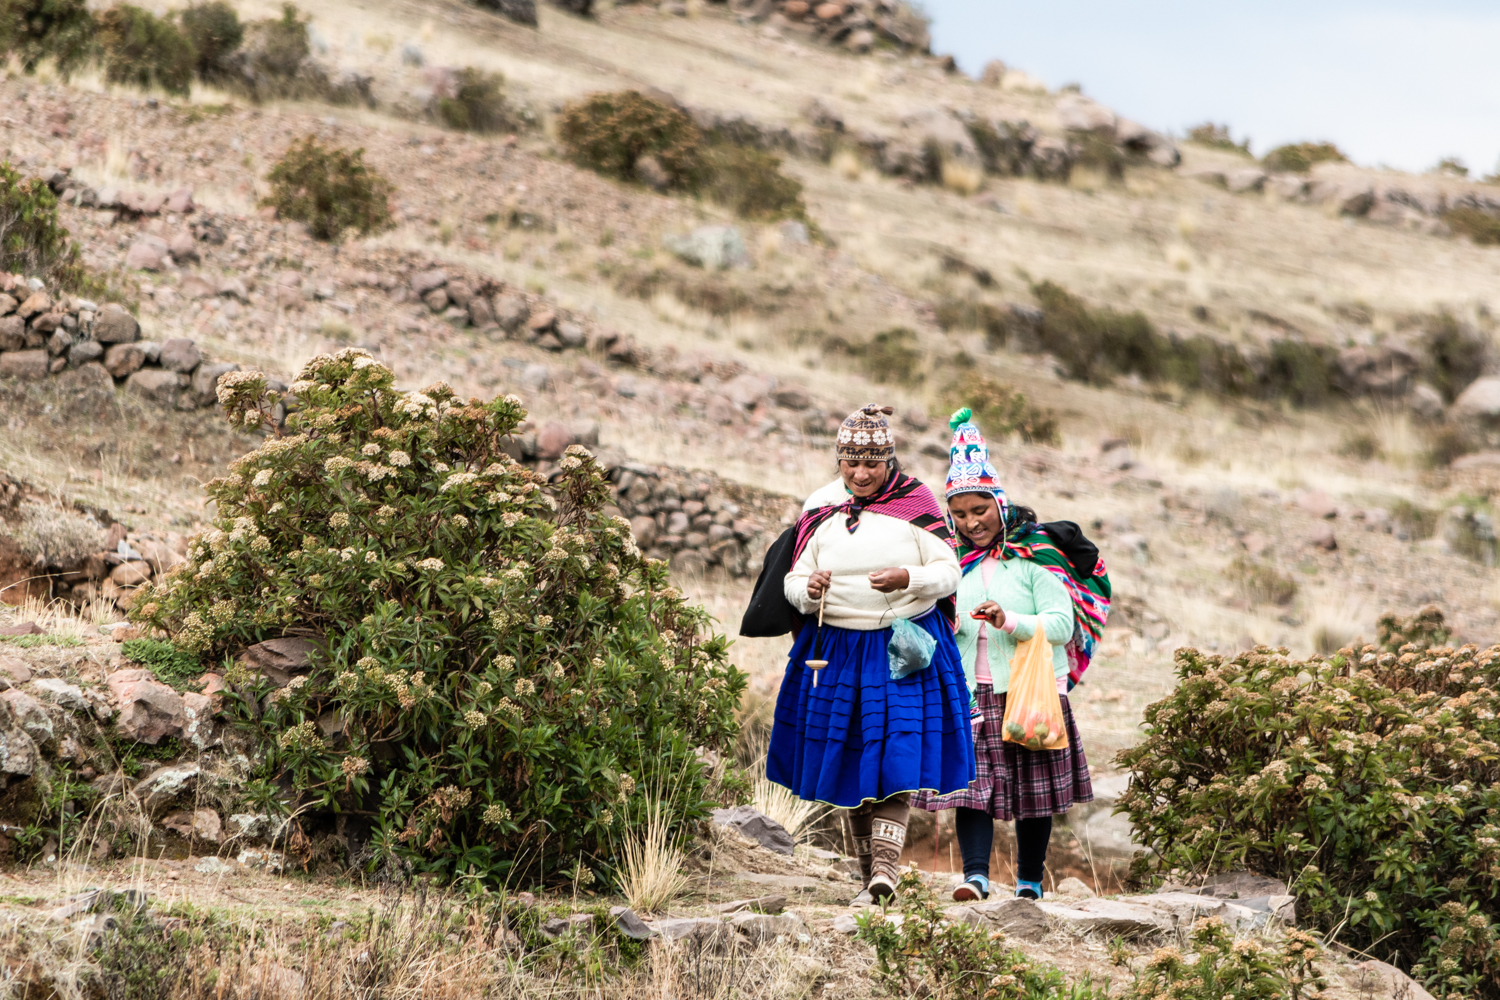 Women are used to knit while climbing the hills of Amantani.